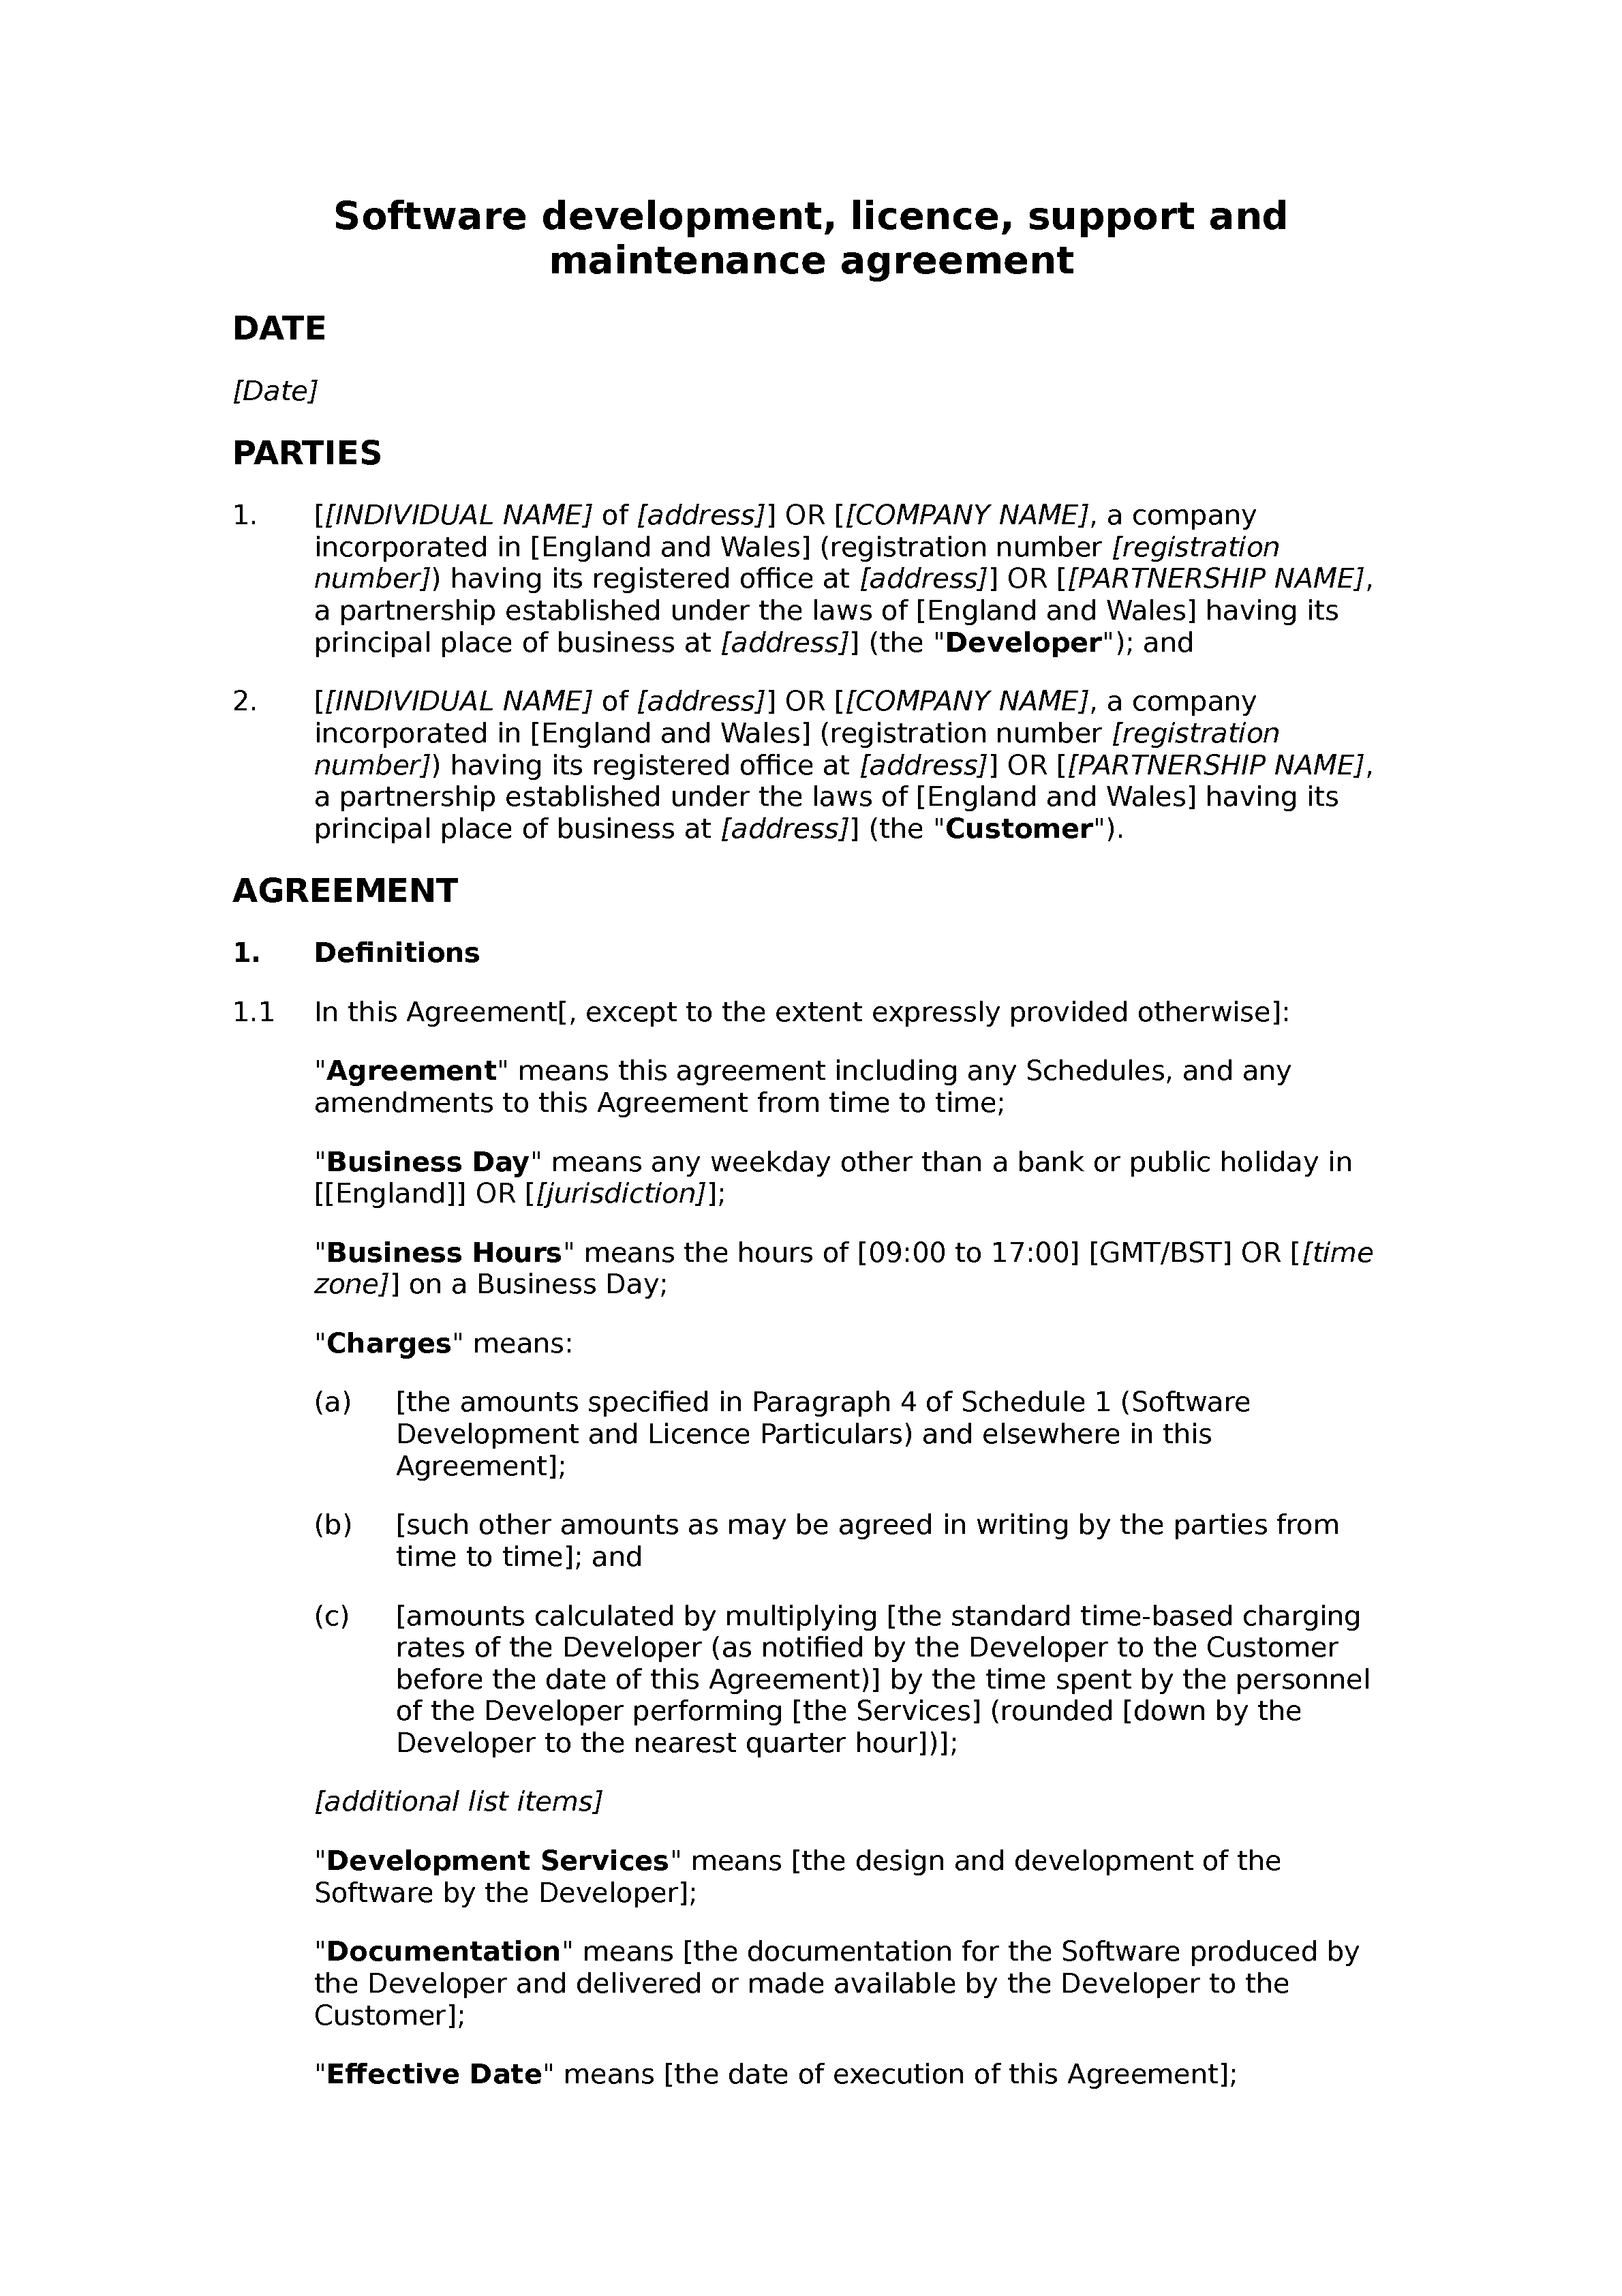 Software development, licence, support and maintenance agreement (basic) document preview